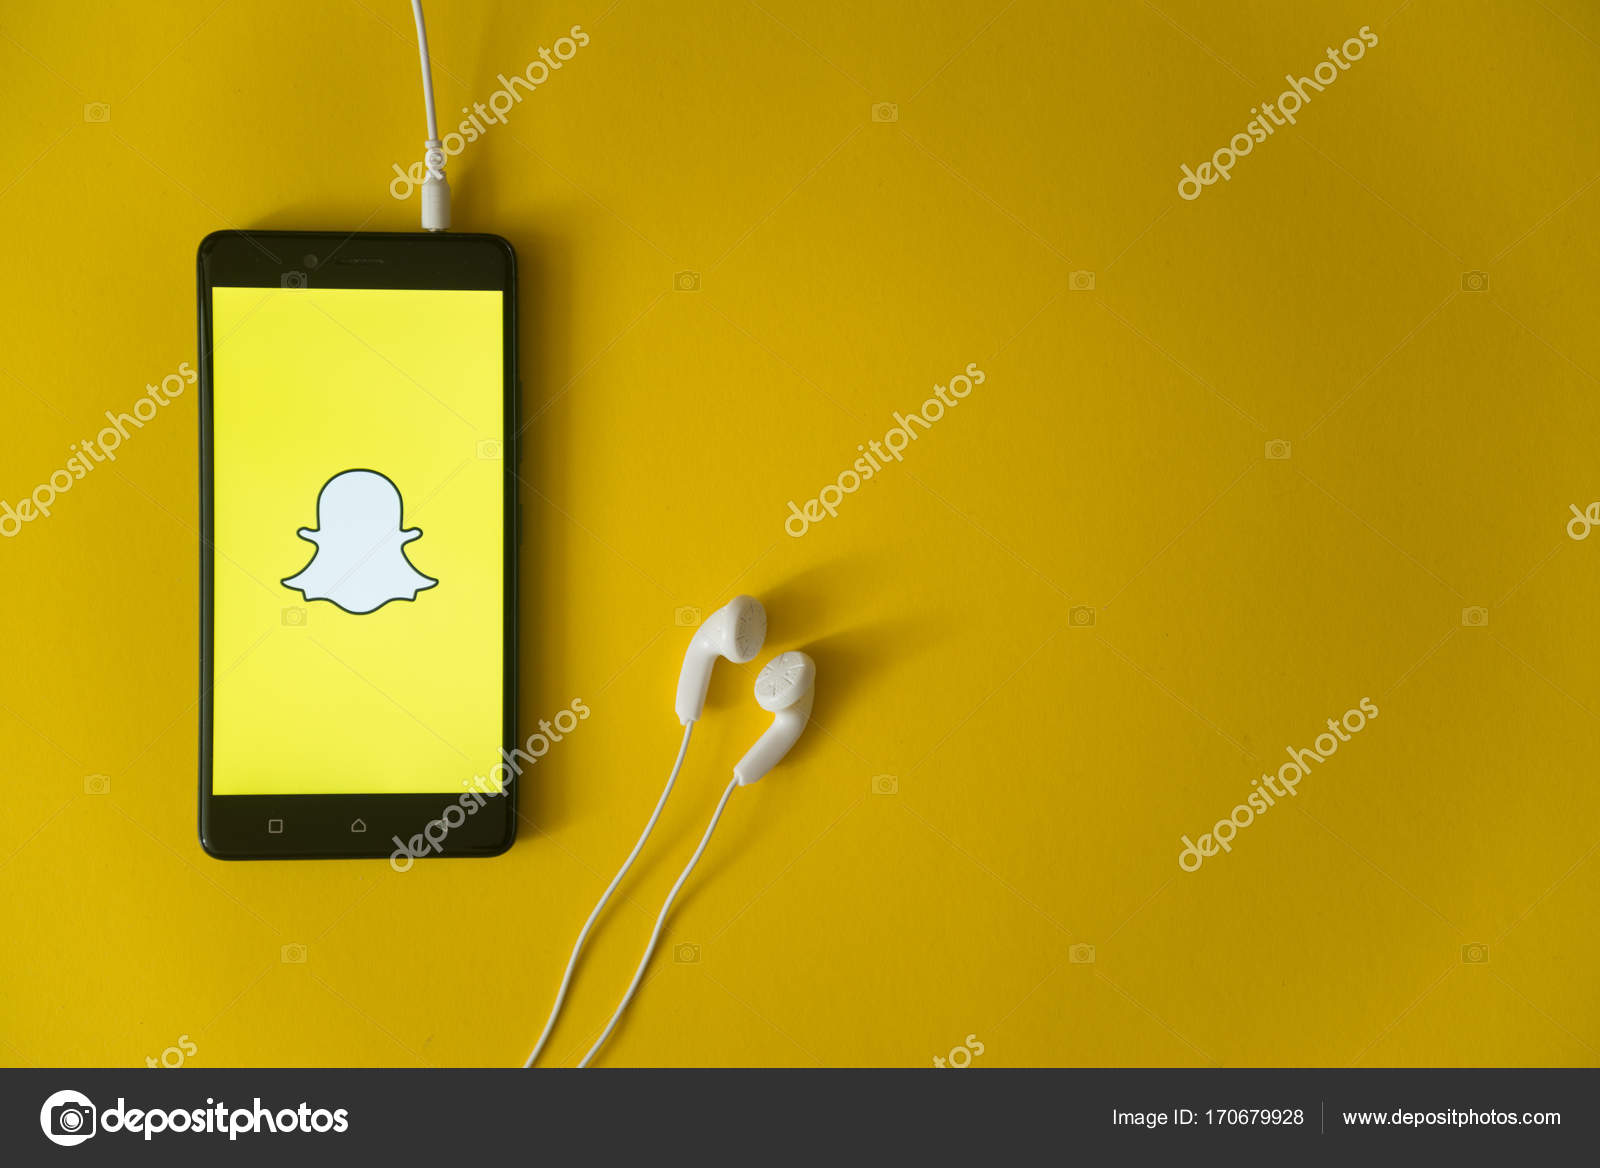 Snapchat logo on smartphone screen on yellow background